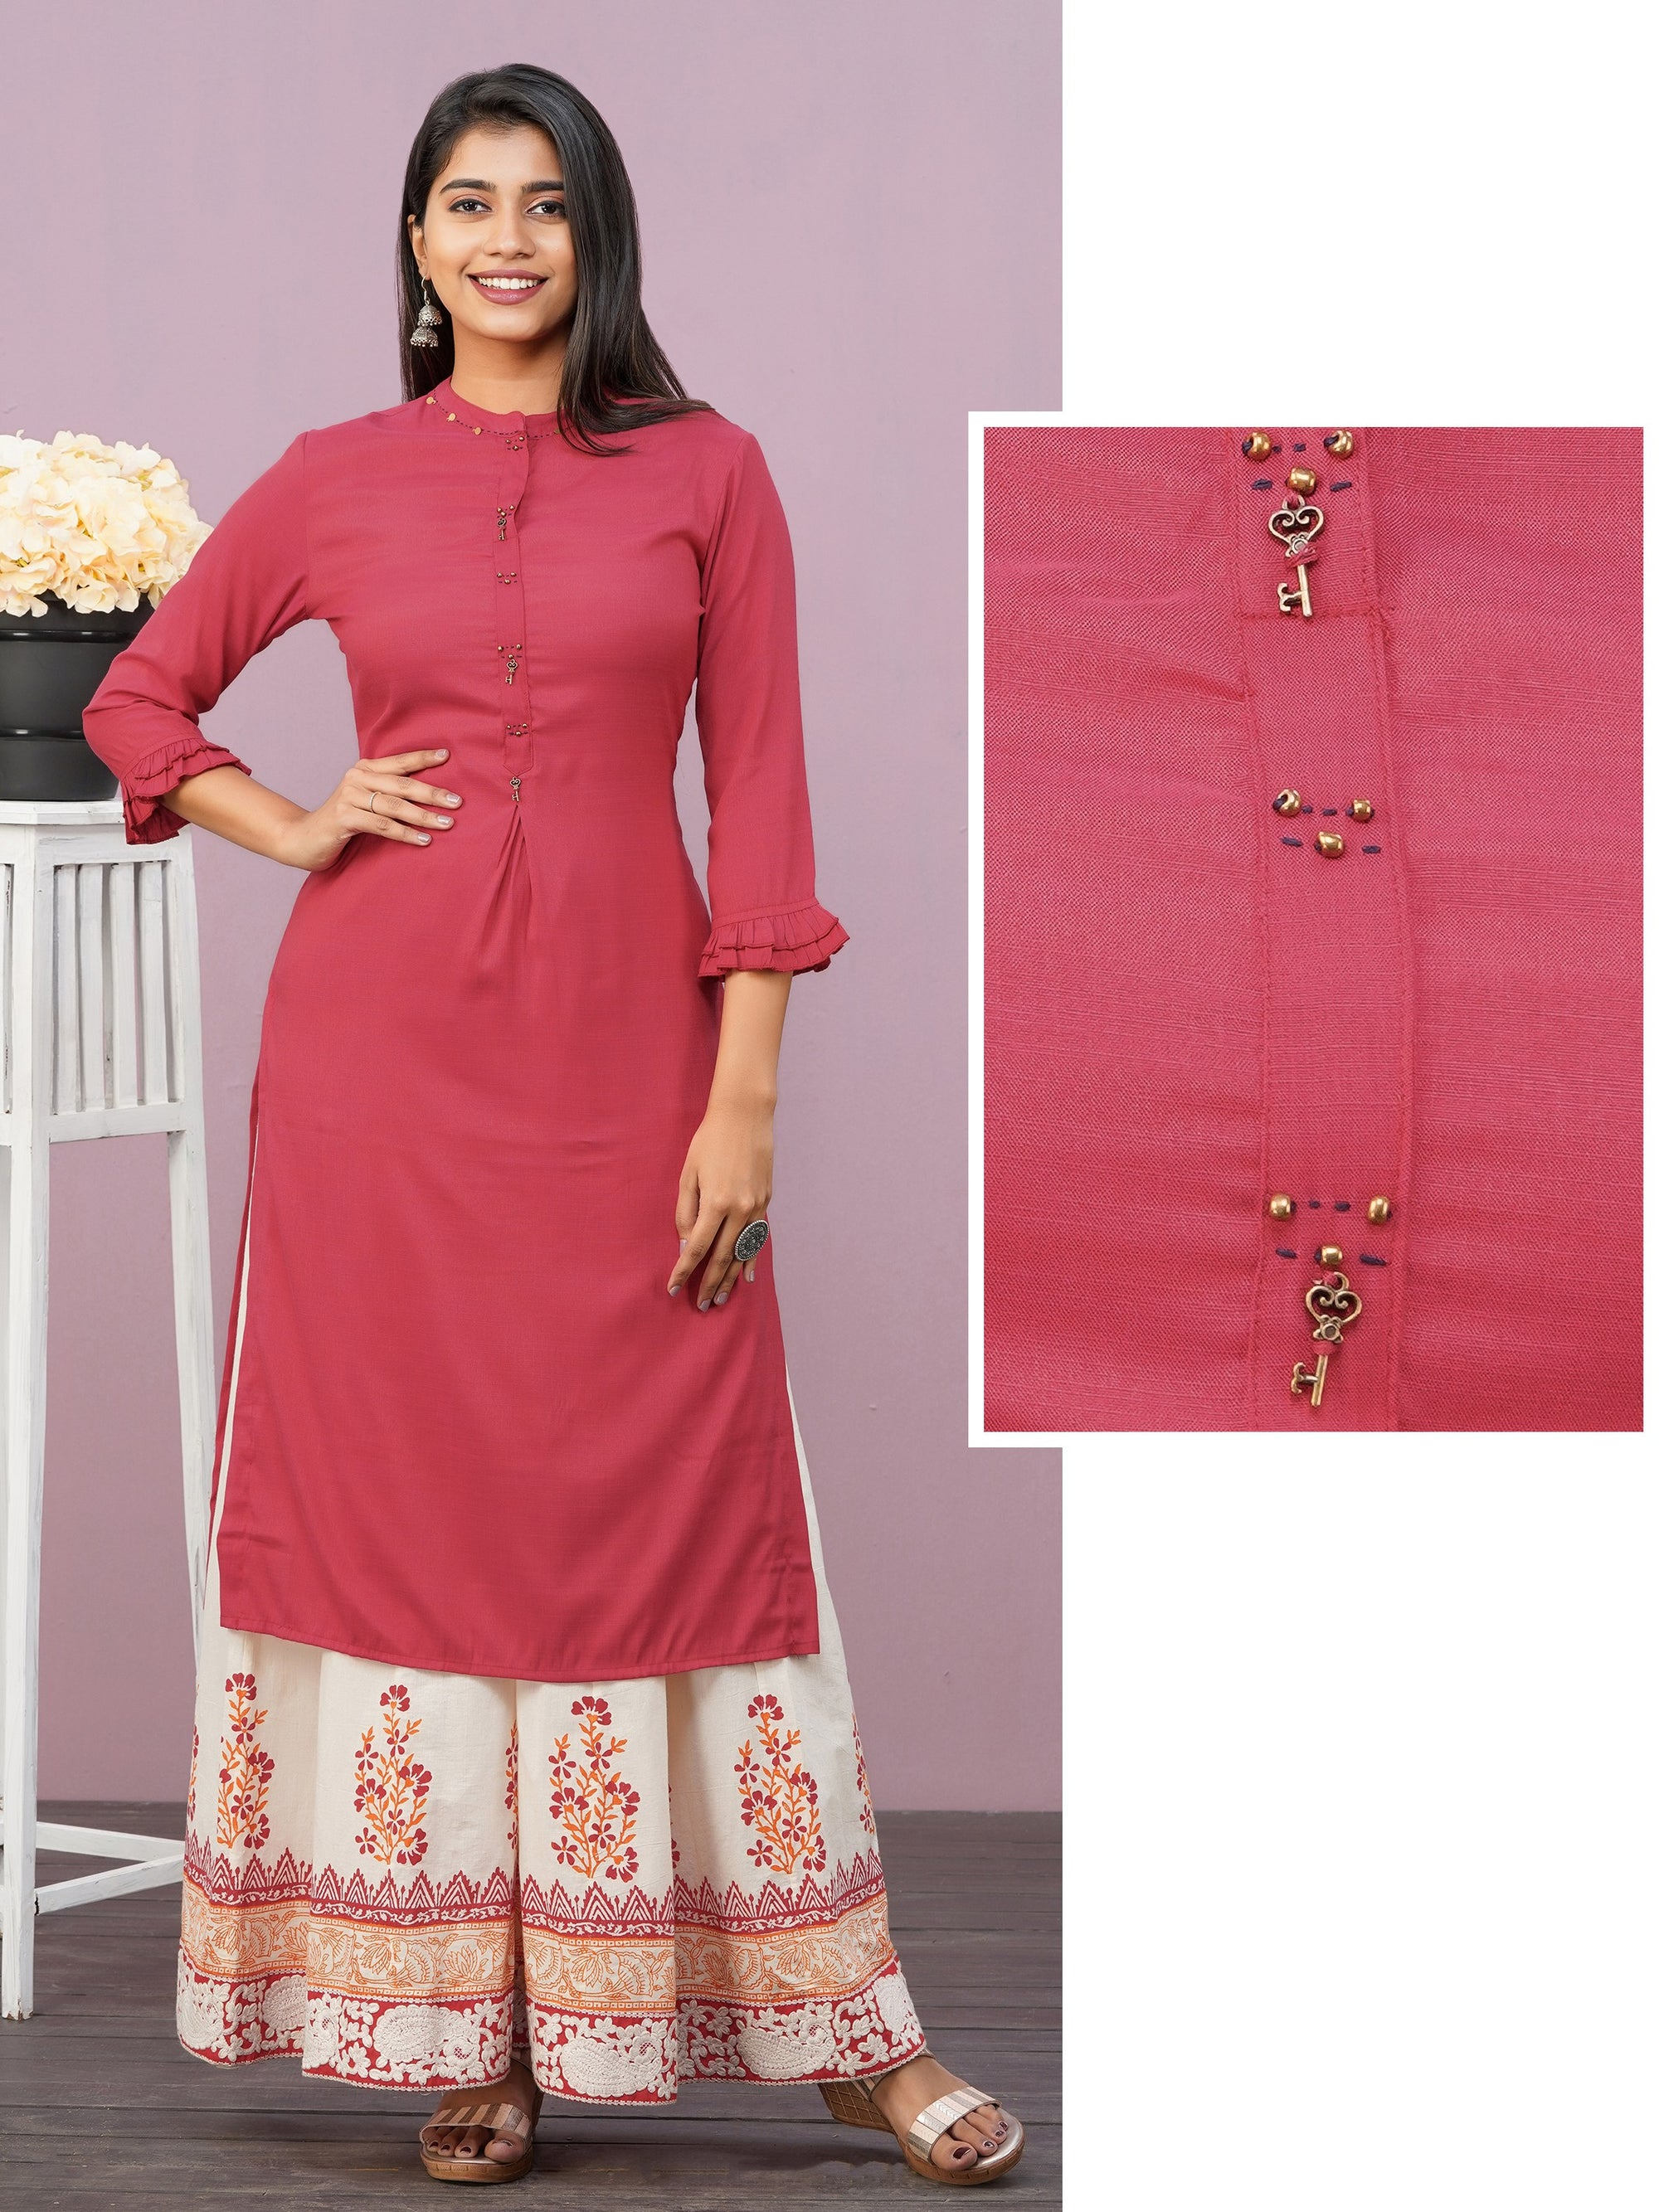 Antique Key Brooches Enhanced Rayon Kurti